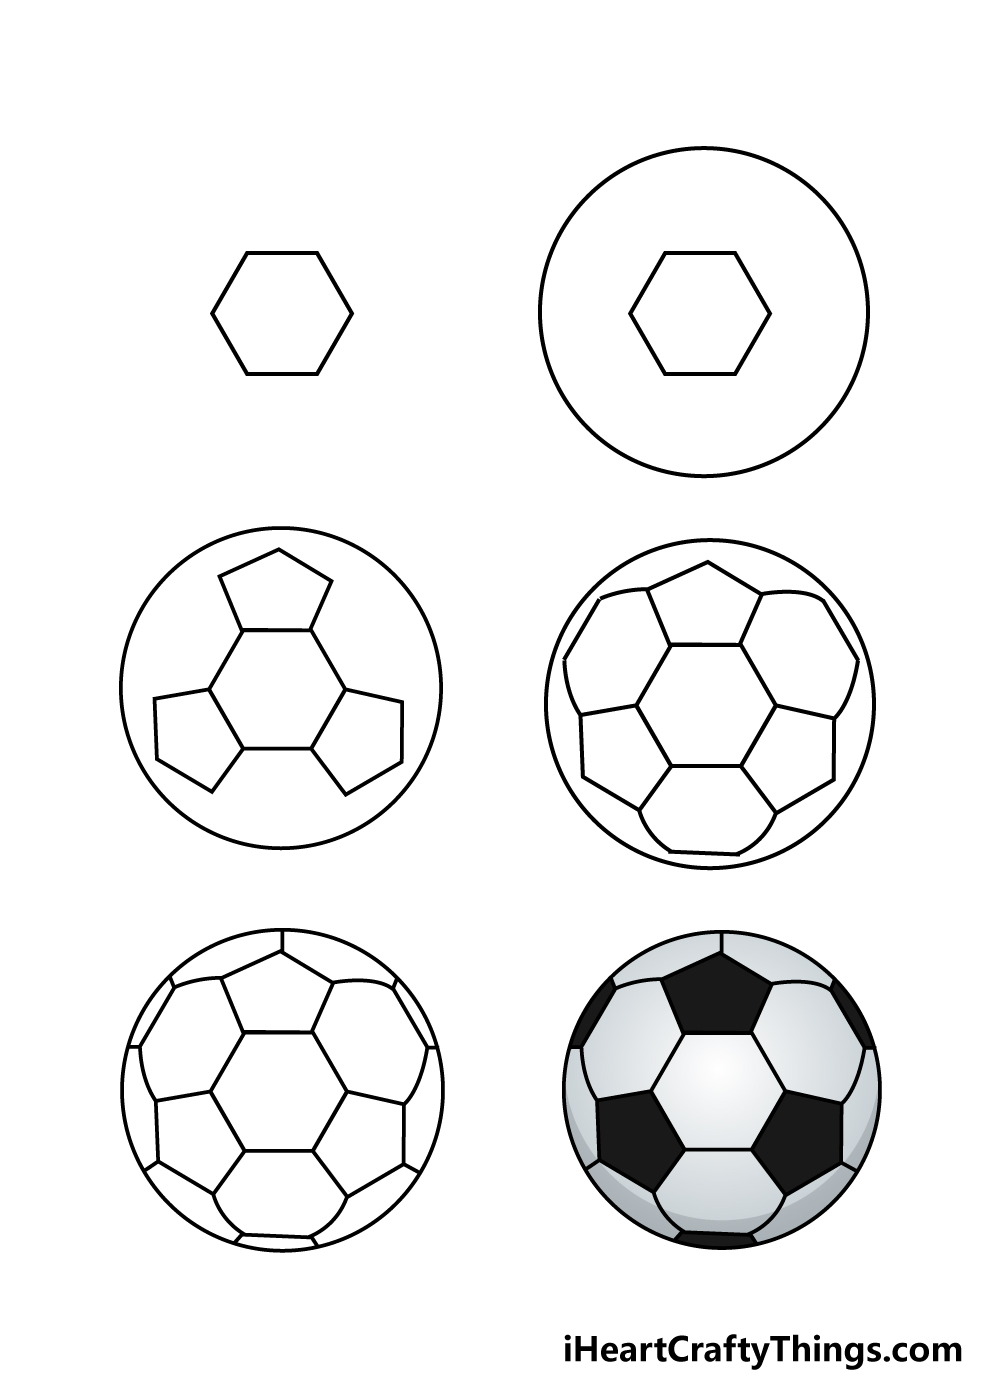 how to draw soccer ball in 6 steps